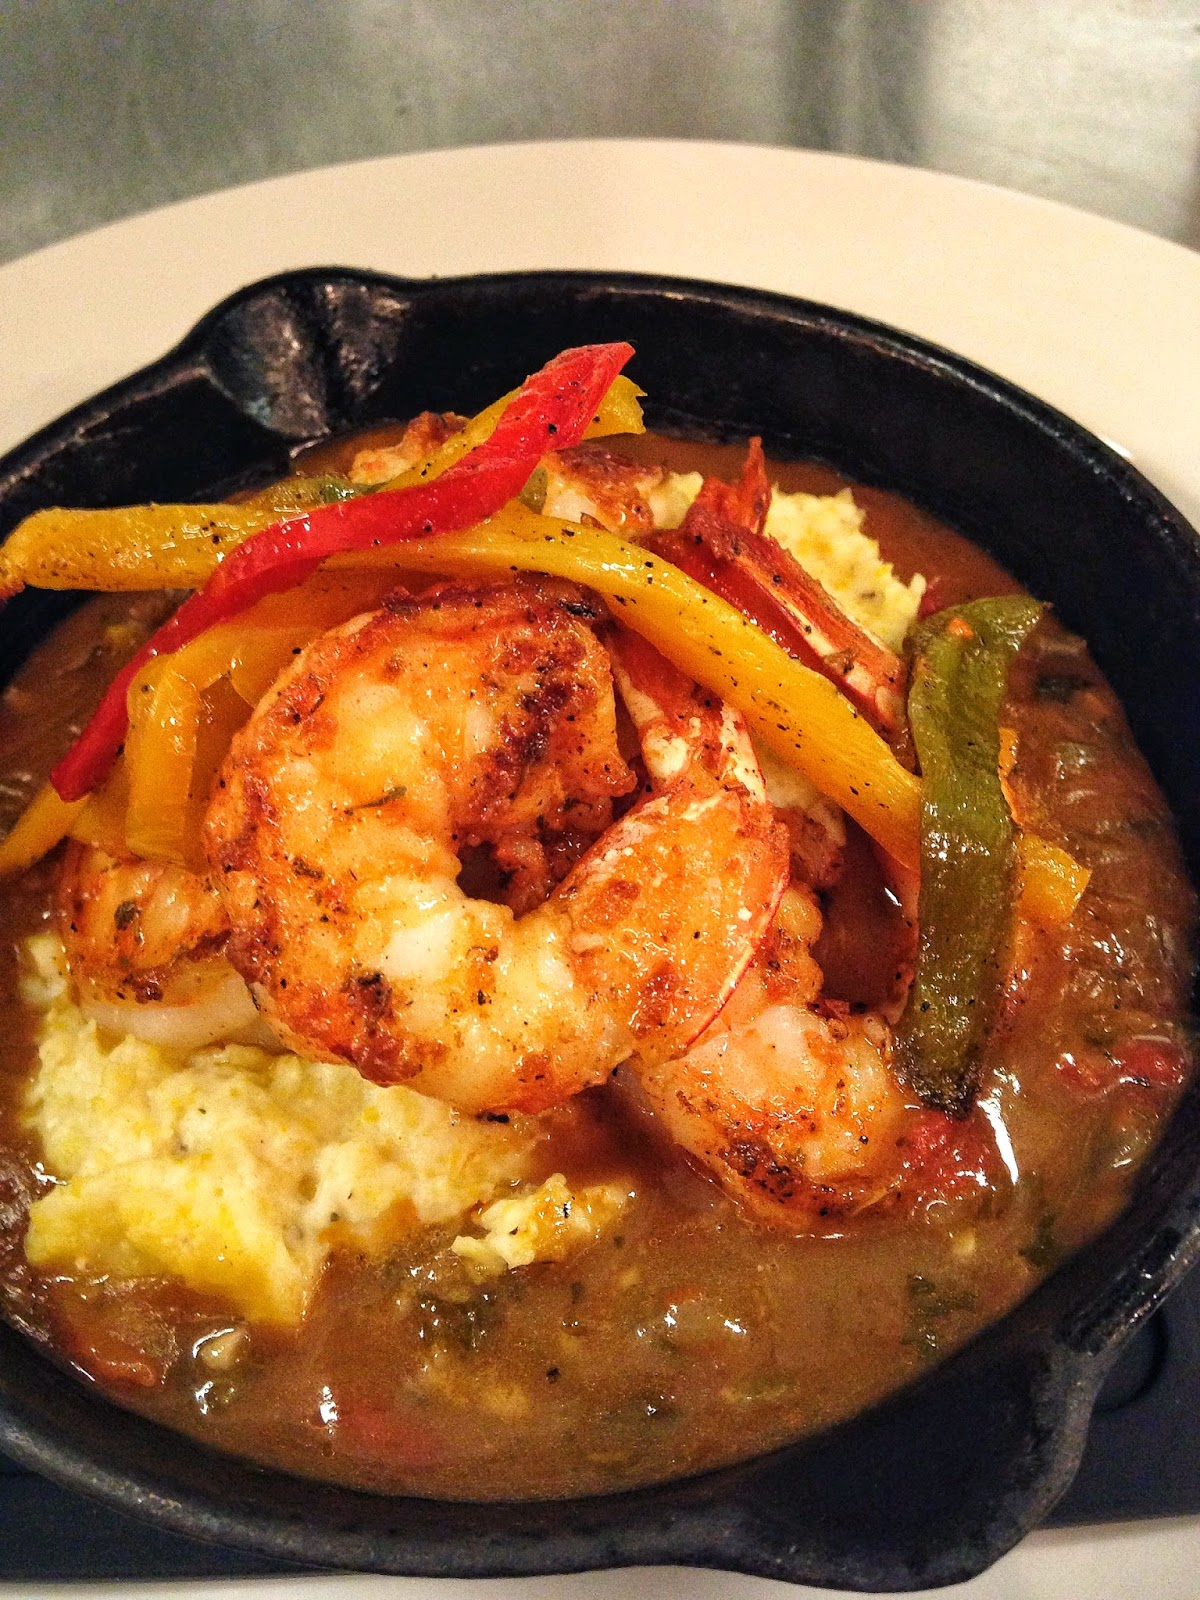 Le Creole's Shrimp and Grits